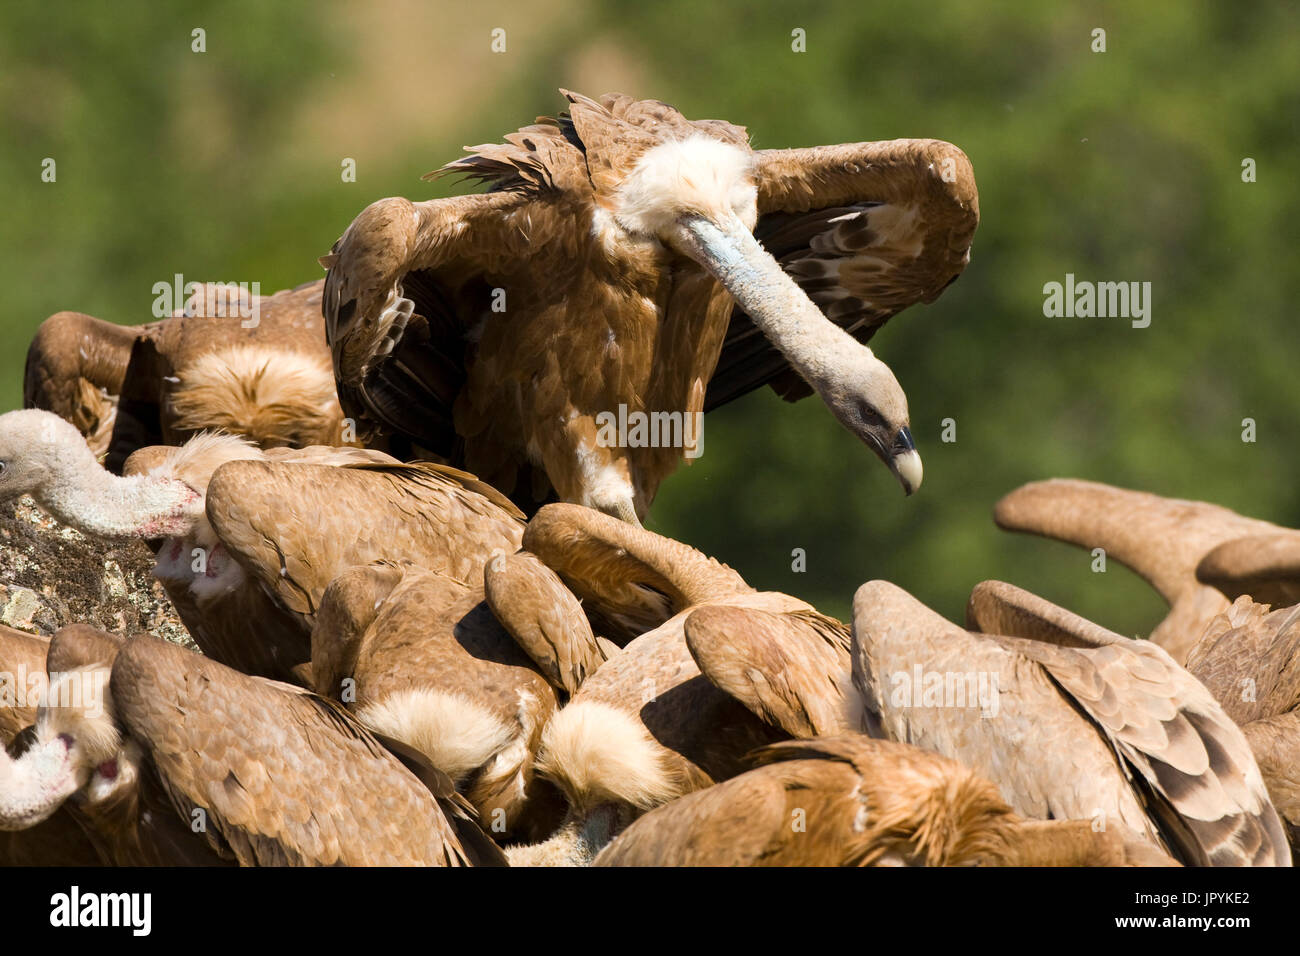 Griffon vultures on ground - Spain - Stock Image